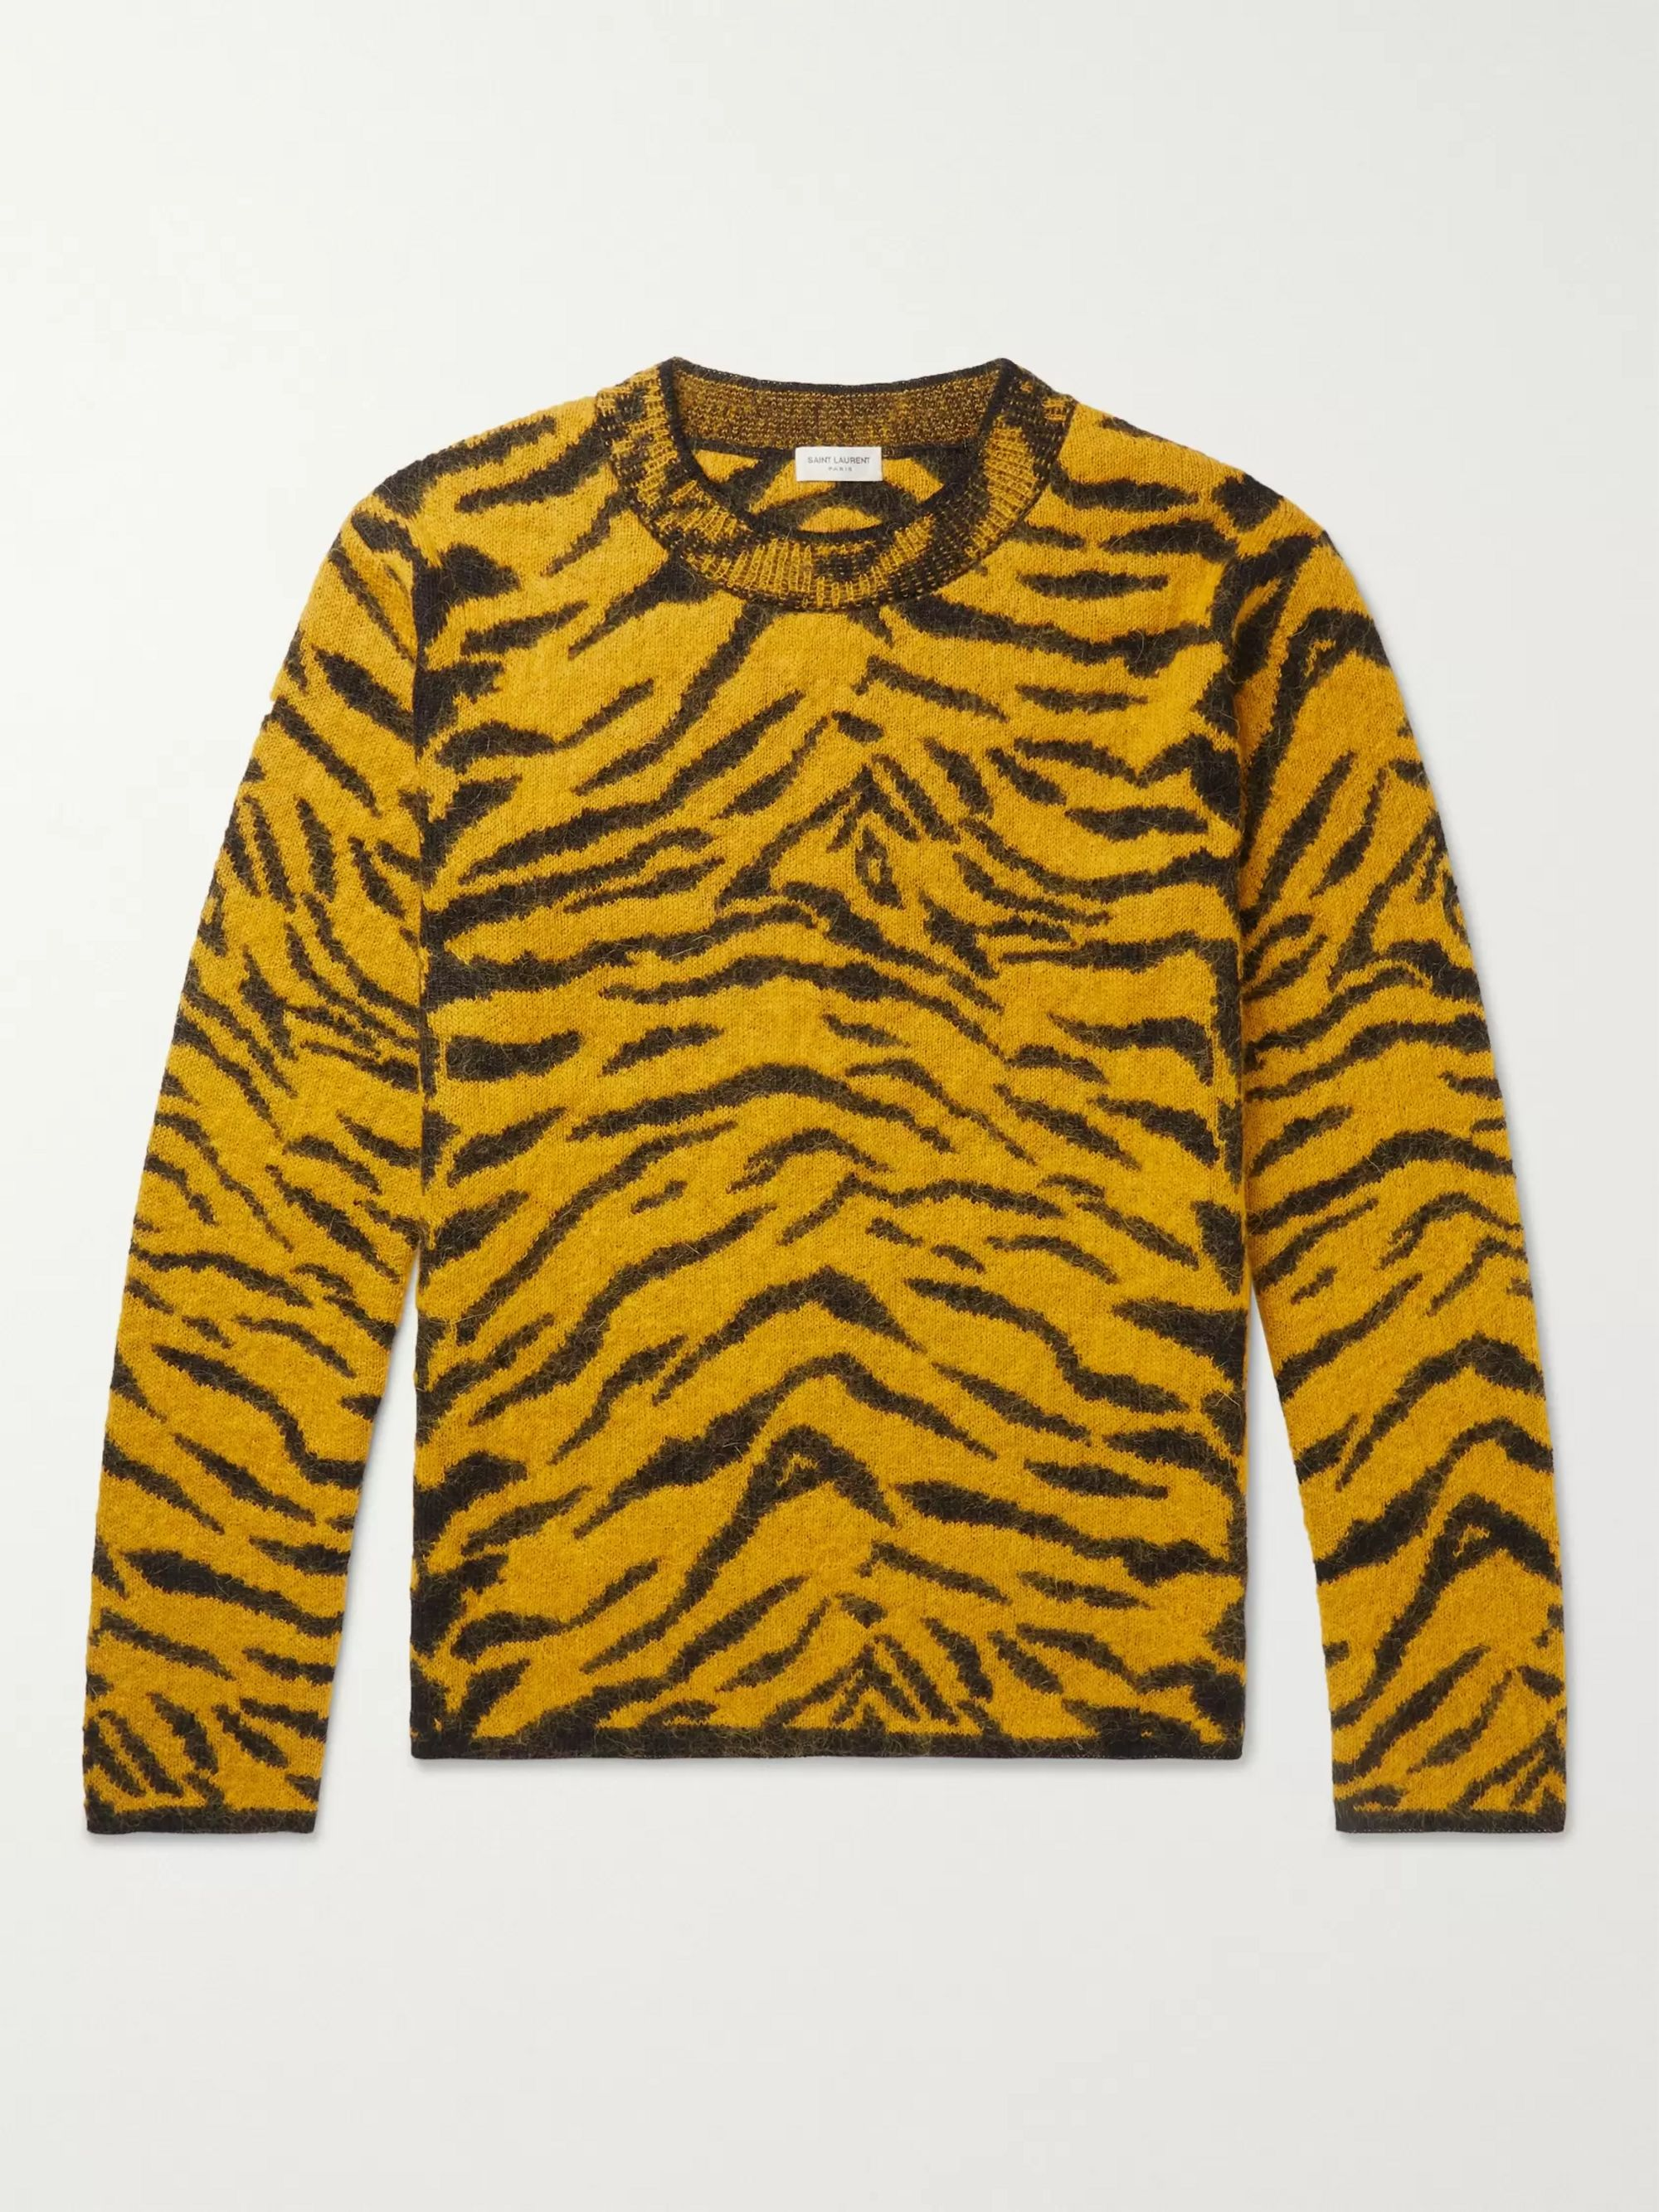 SAINT LAURENT Slim-Fit Tiger-Intarsia Wool-Blend Sweater